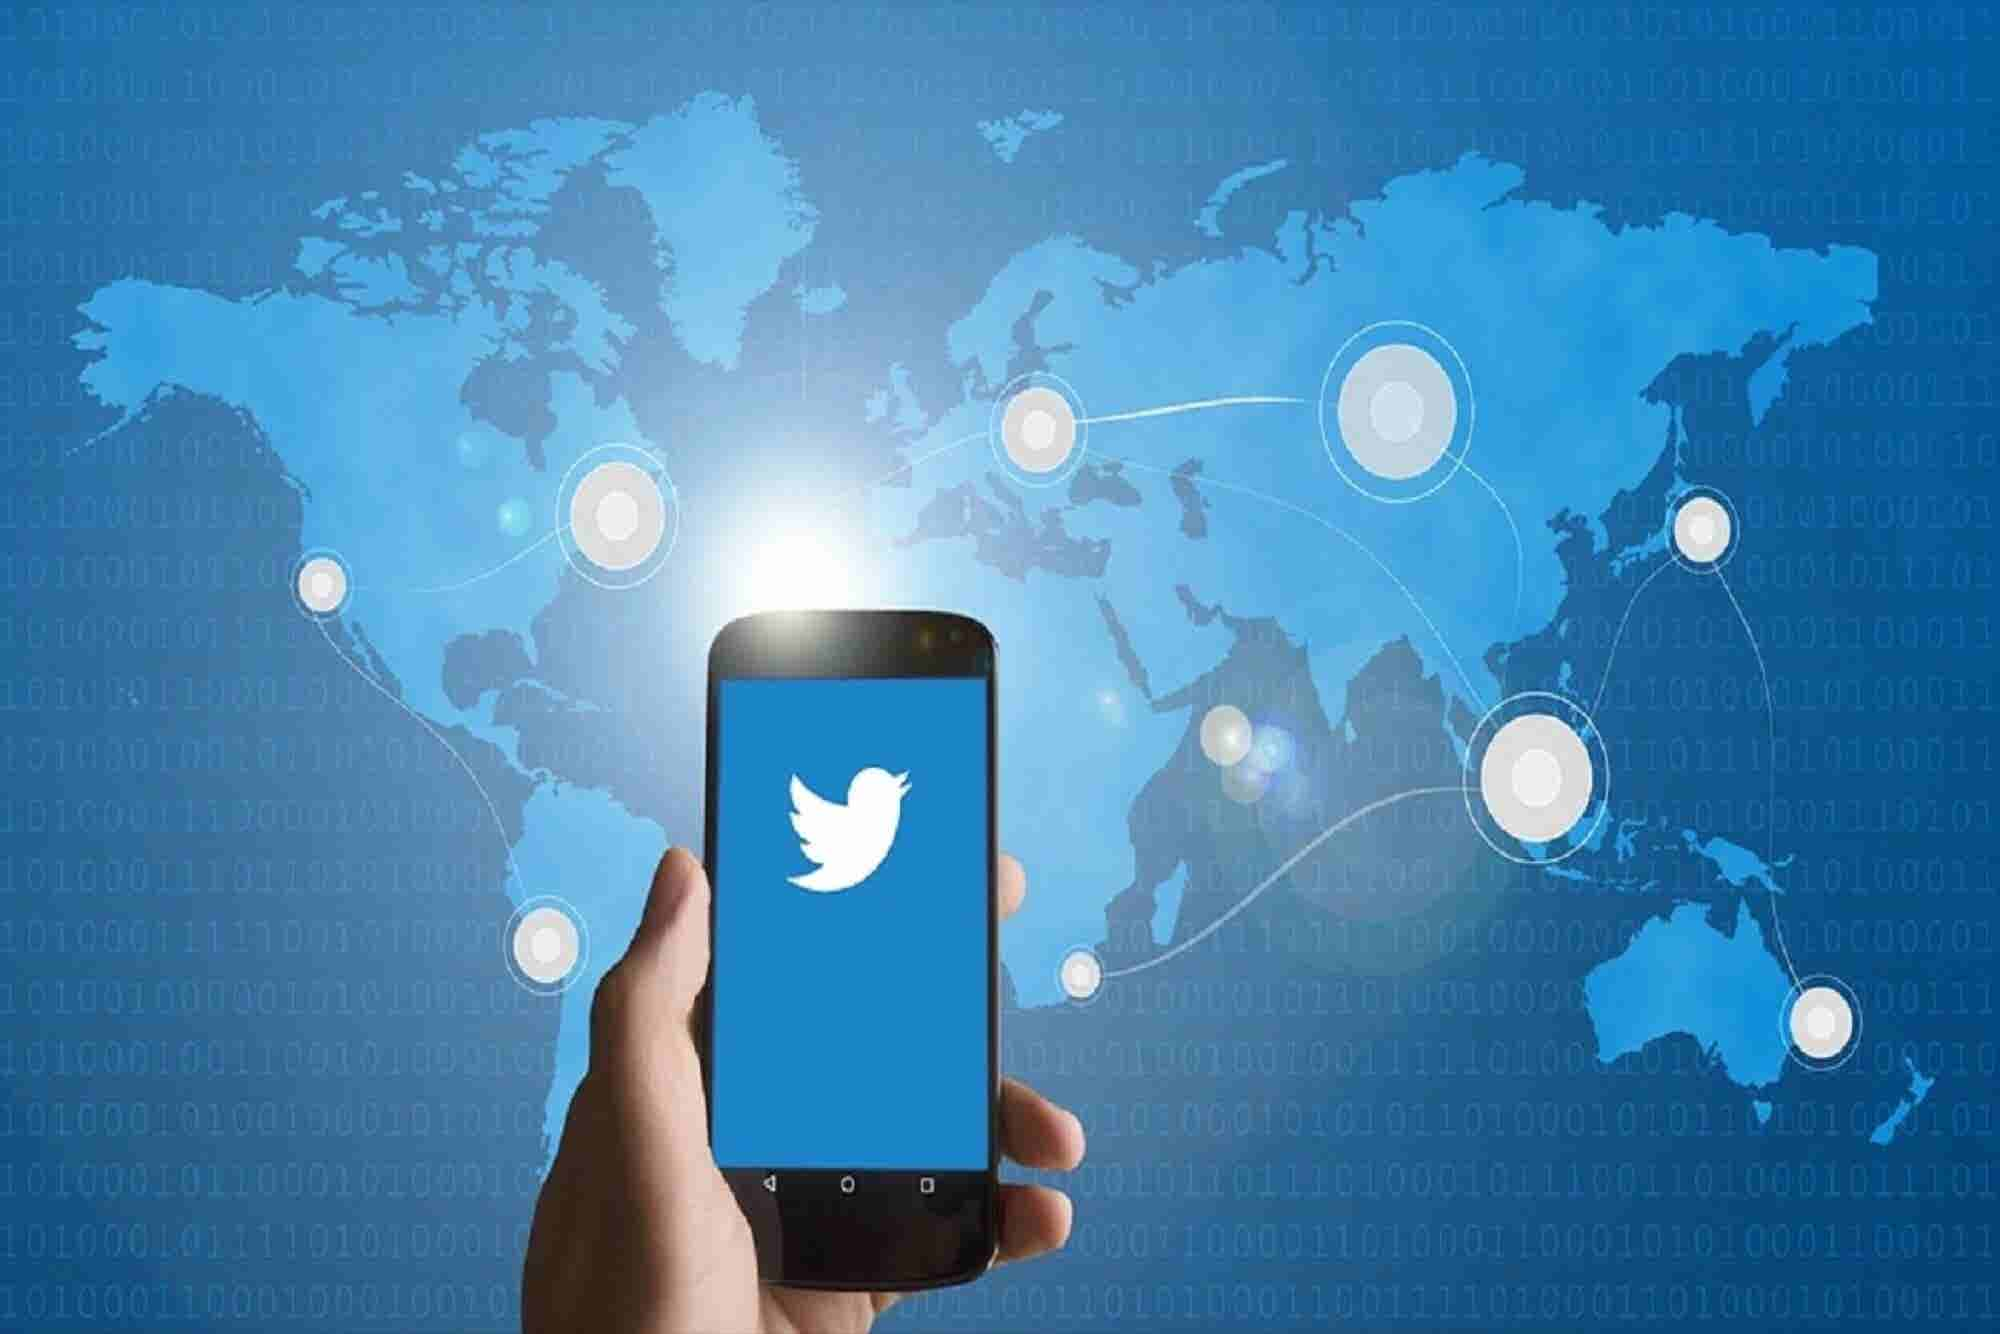 If You Are An India-focused Entrepreneur, You May Want To Follow These Twitter Accounts